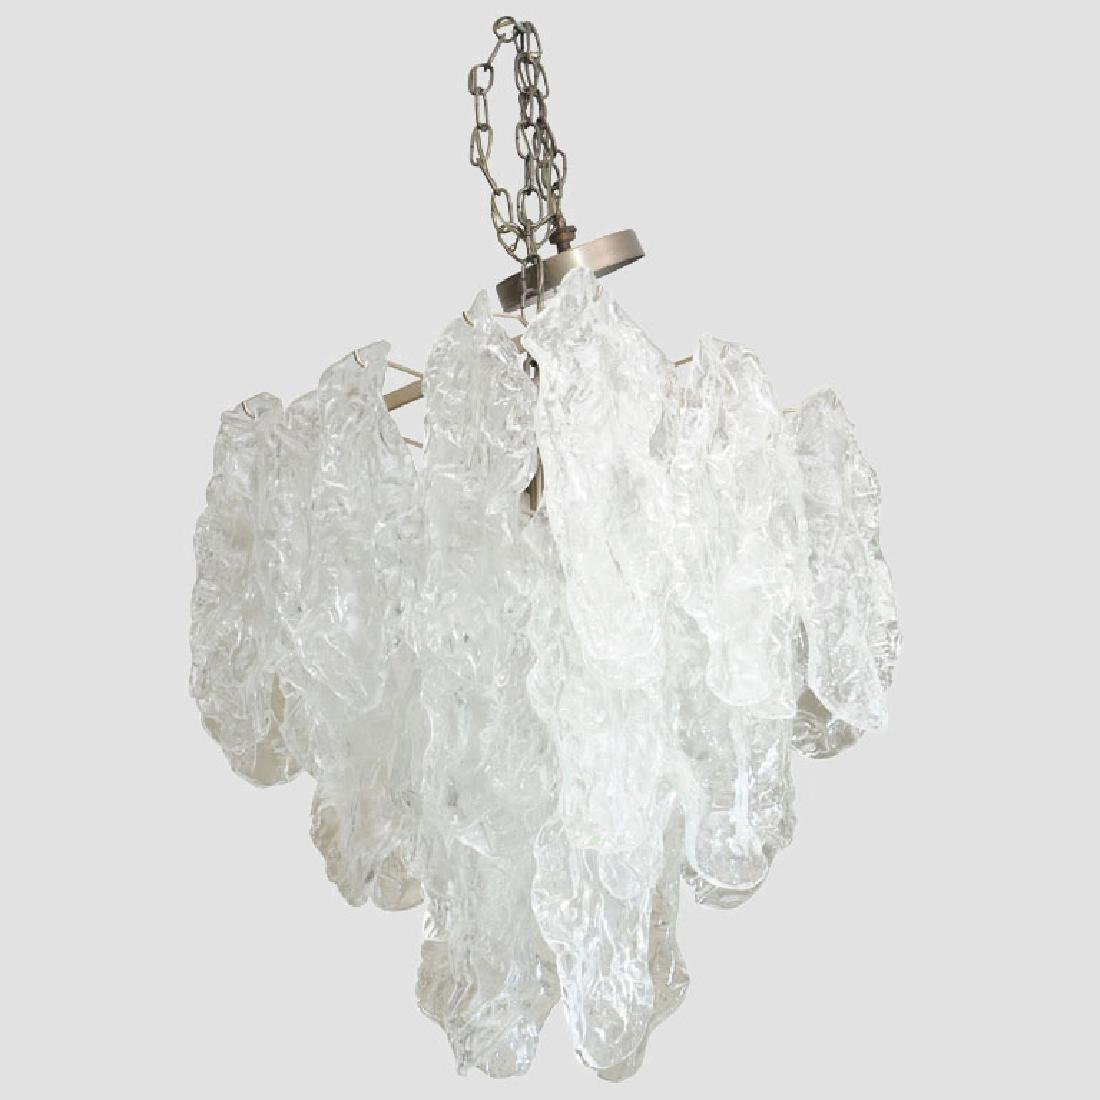 Murano Ice Glass Pendant by Mazzega